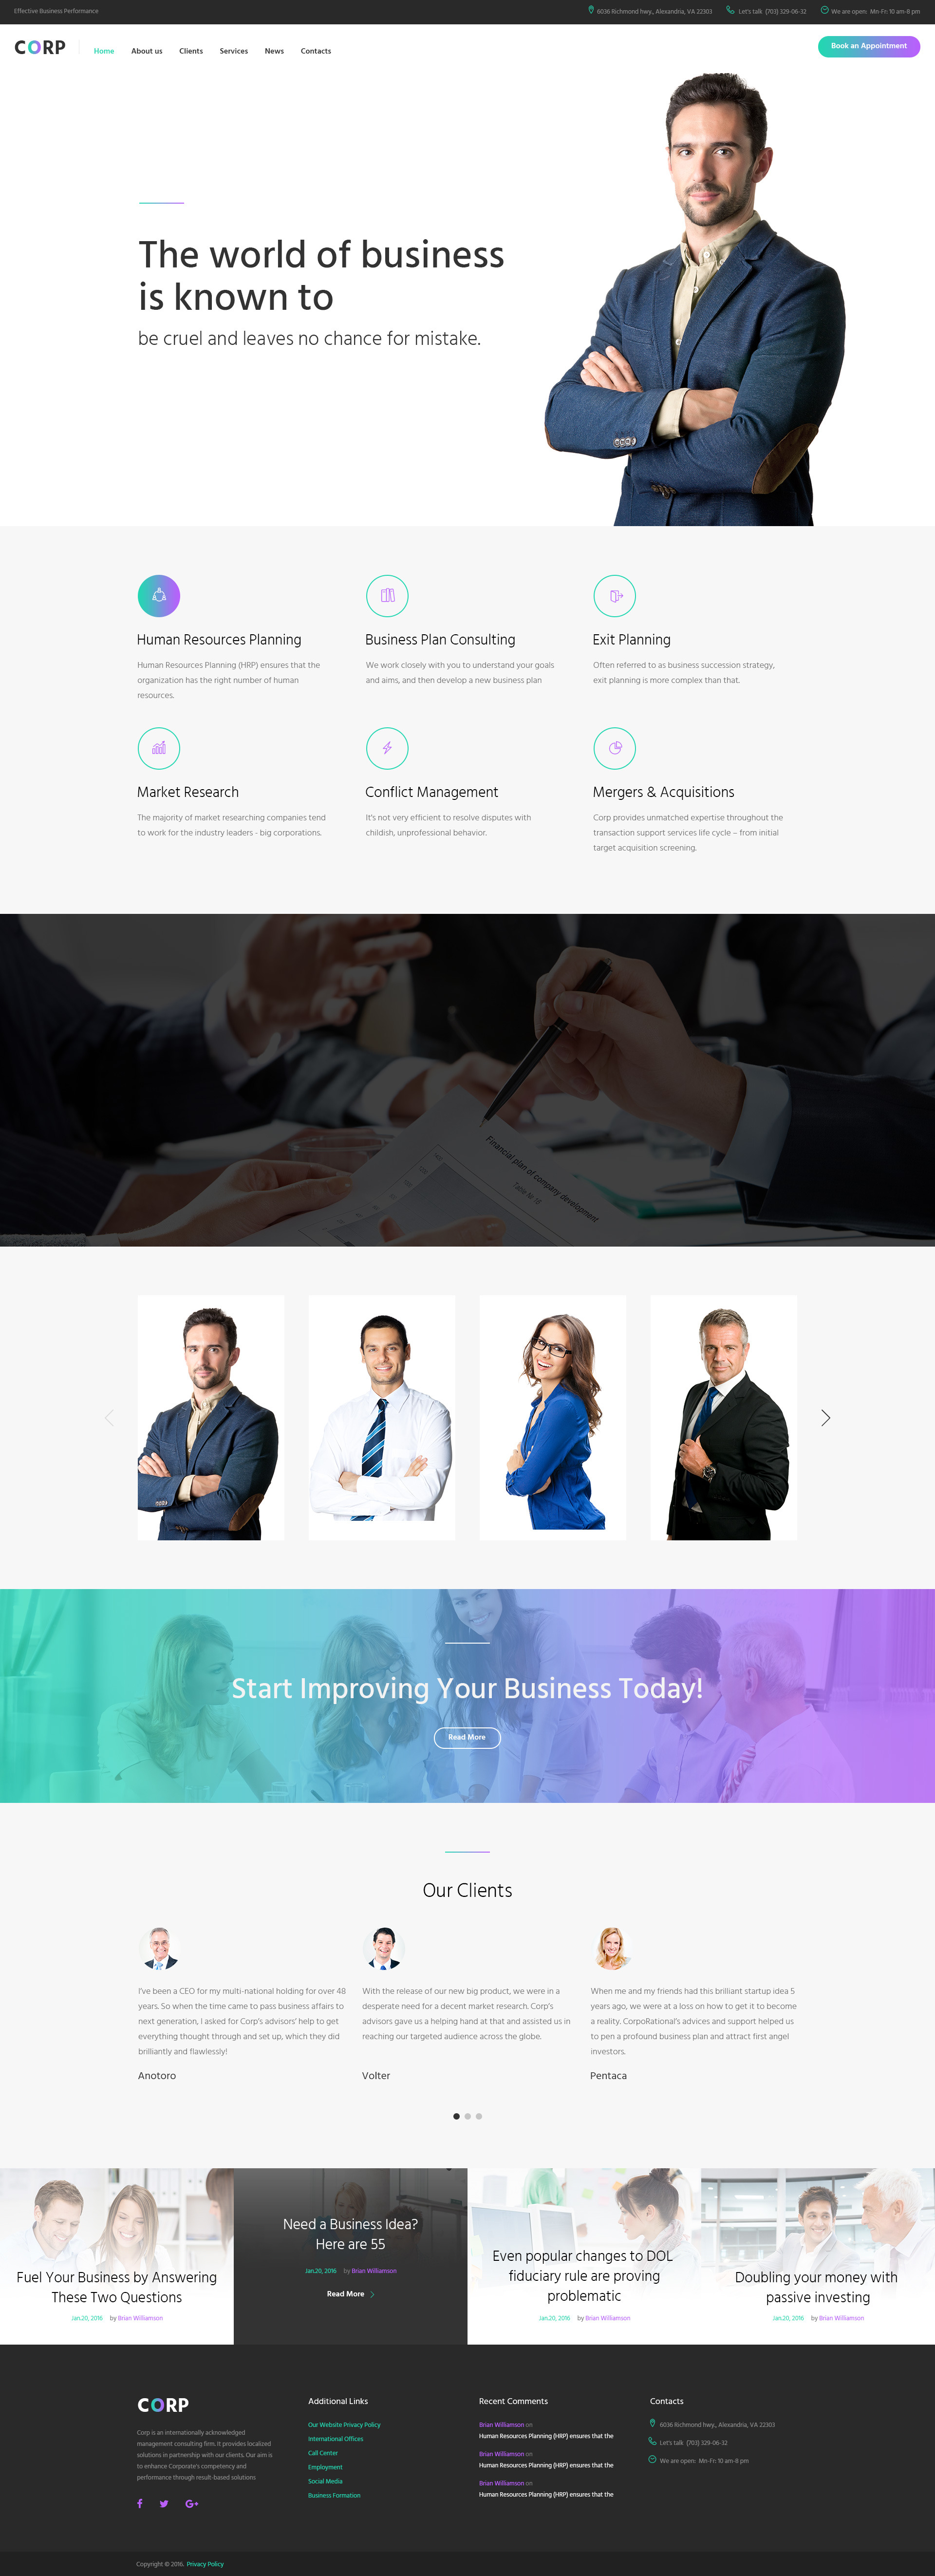 Corp - Consulting Firm Responsive Multipage Screenshot